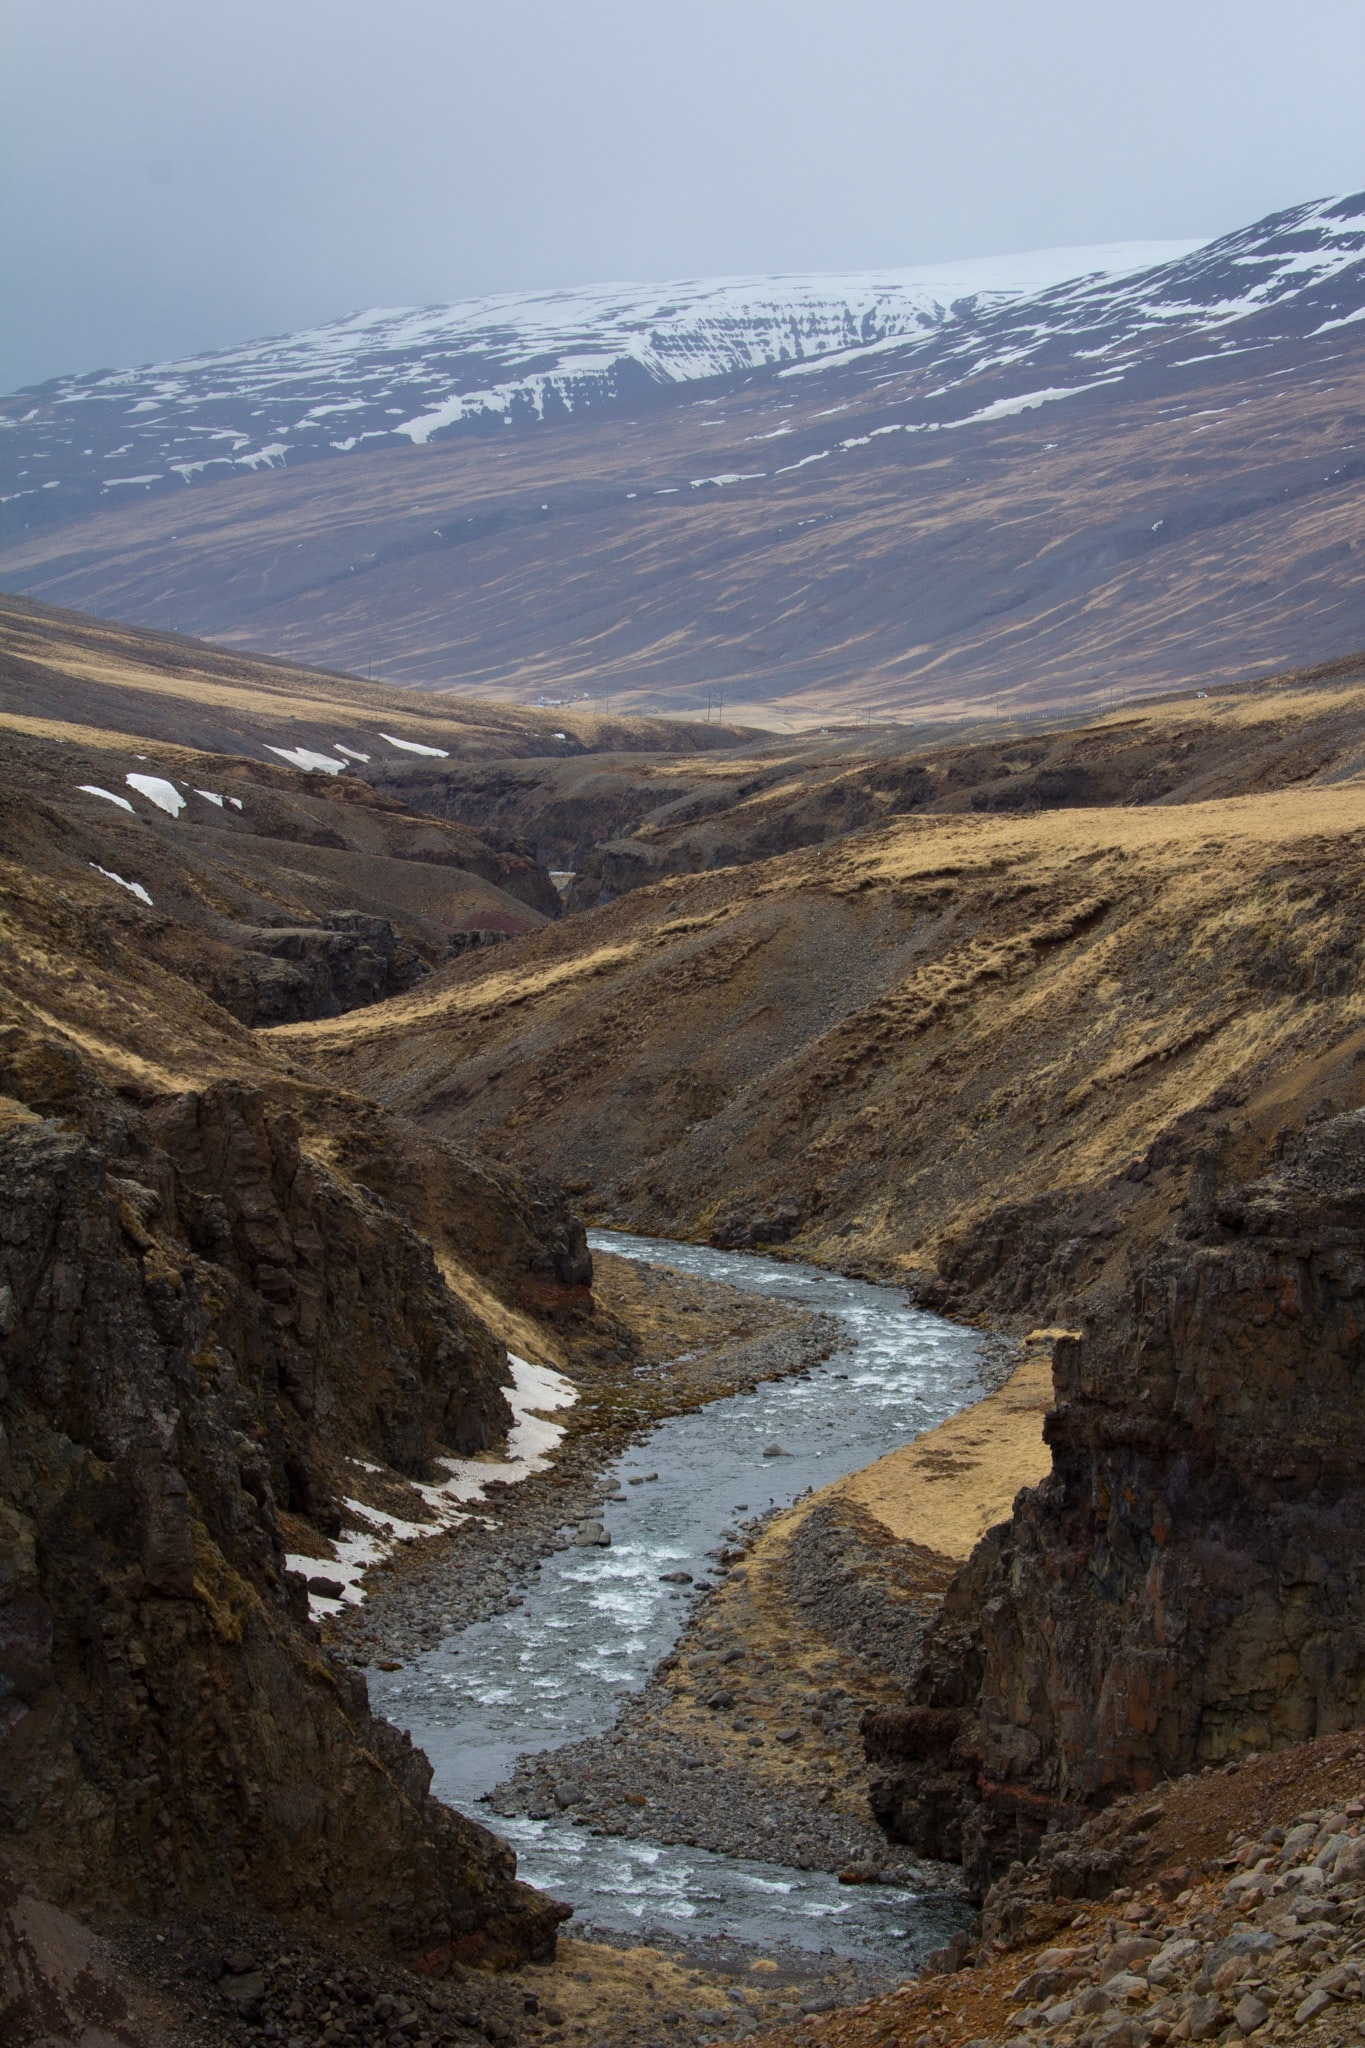 River flowing through a rocky valley with the mountains in the background